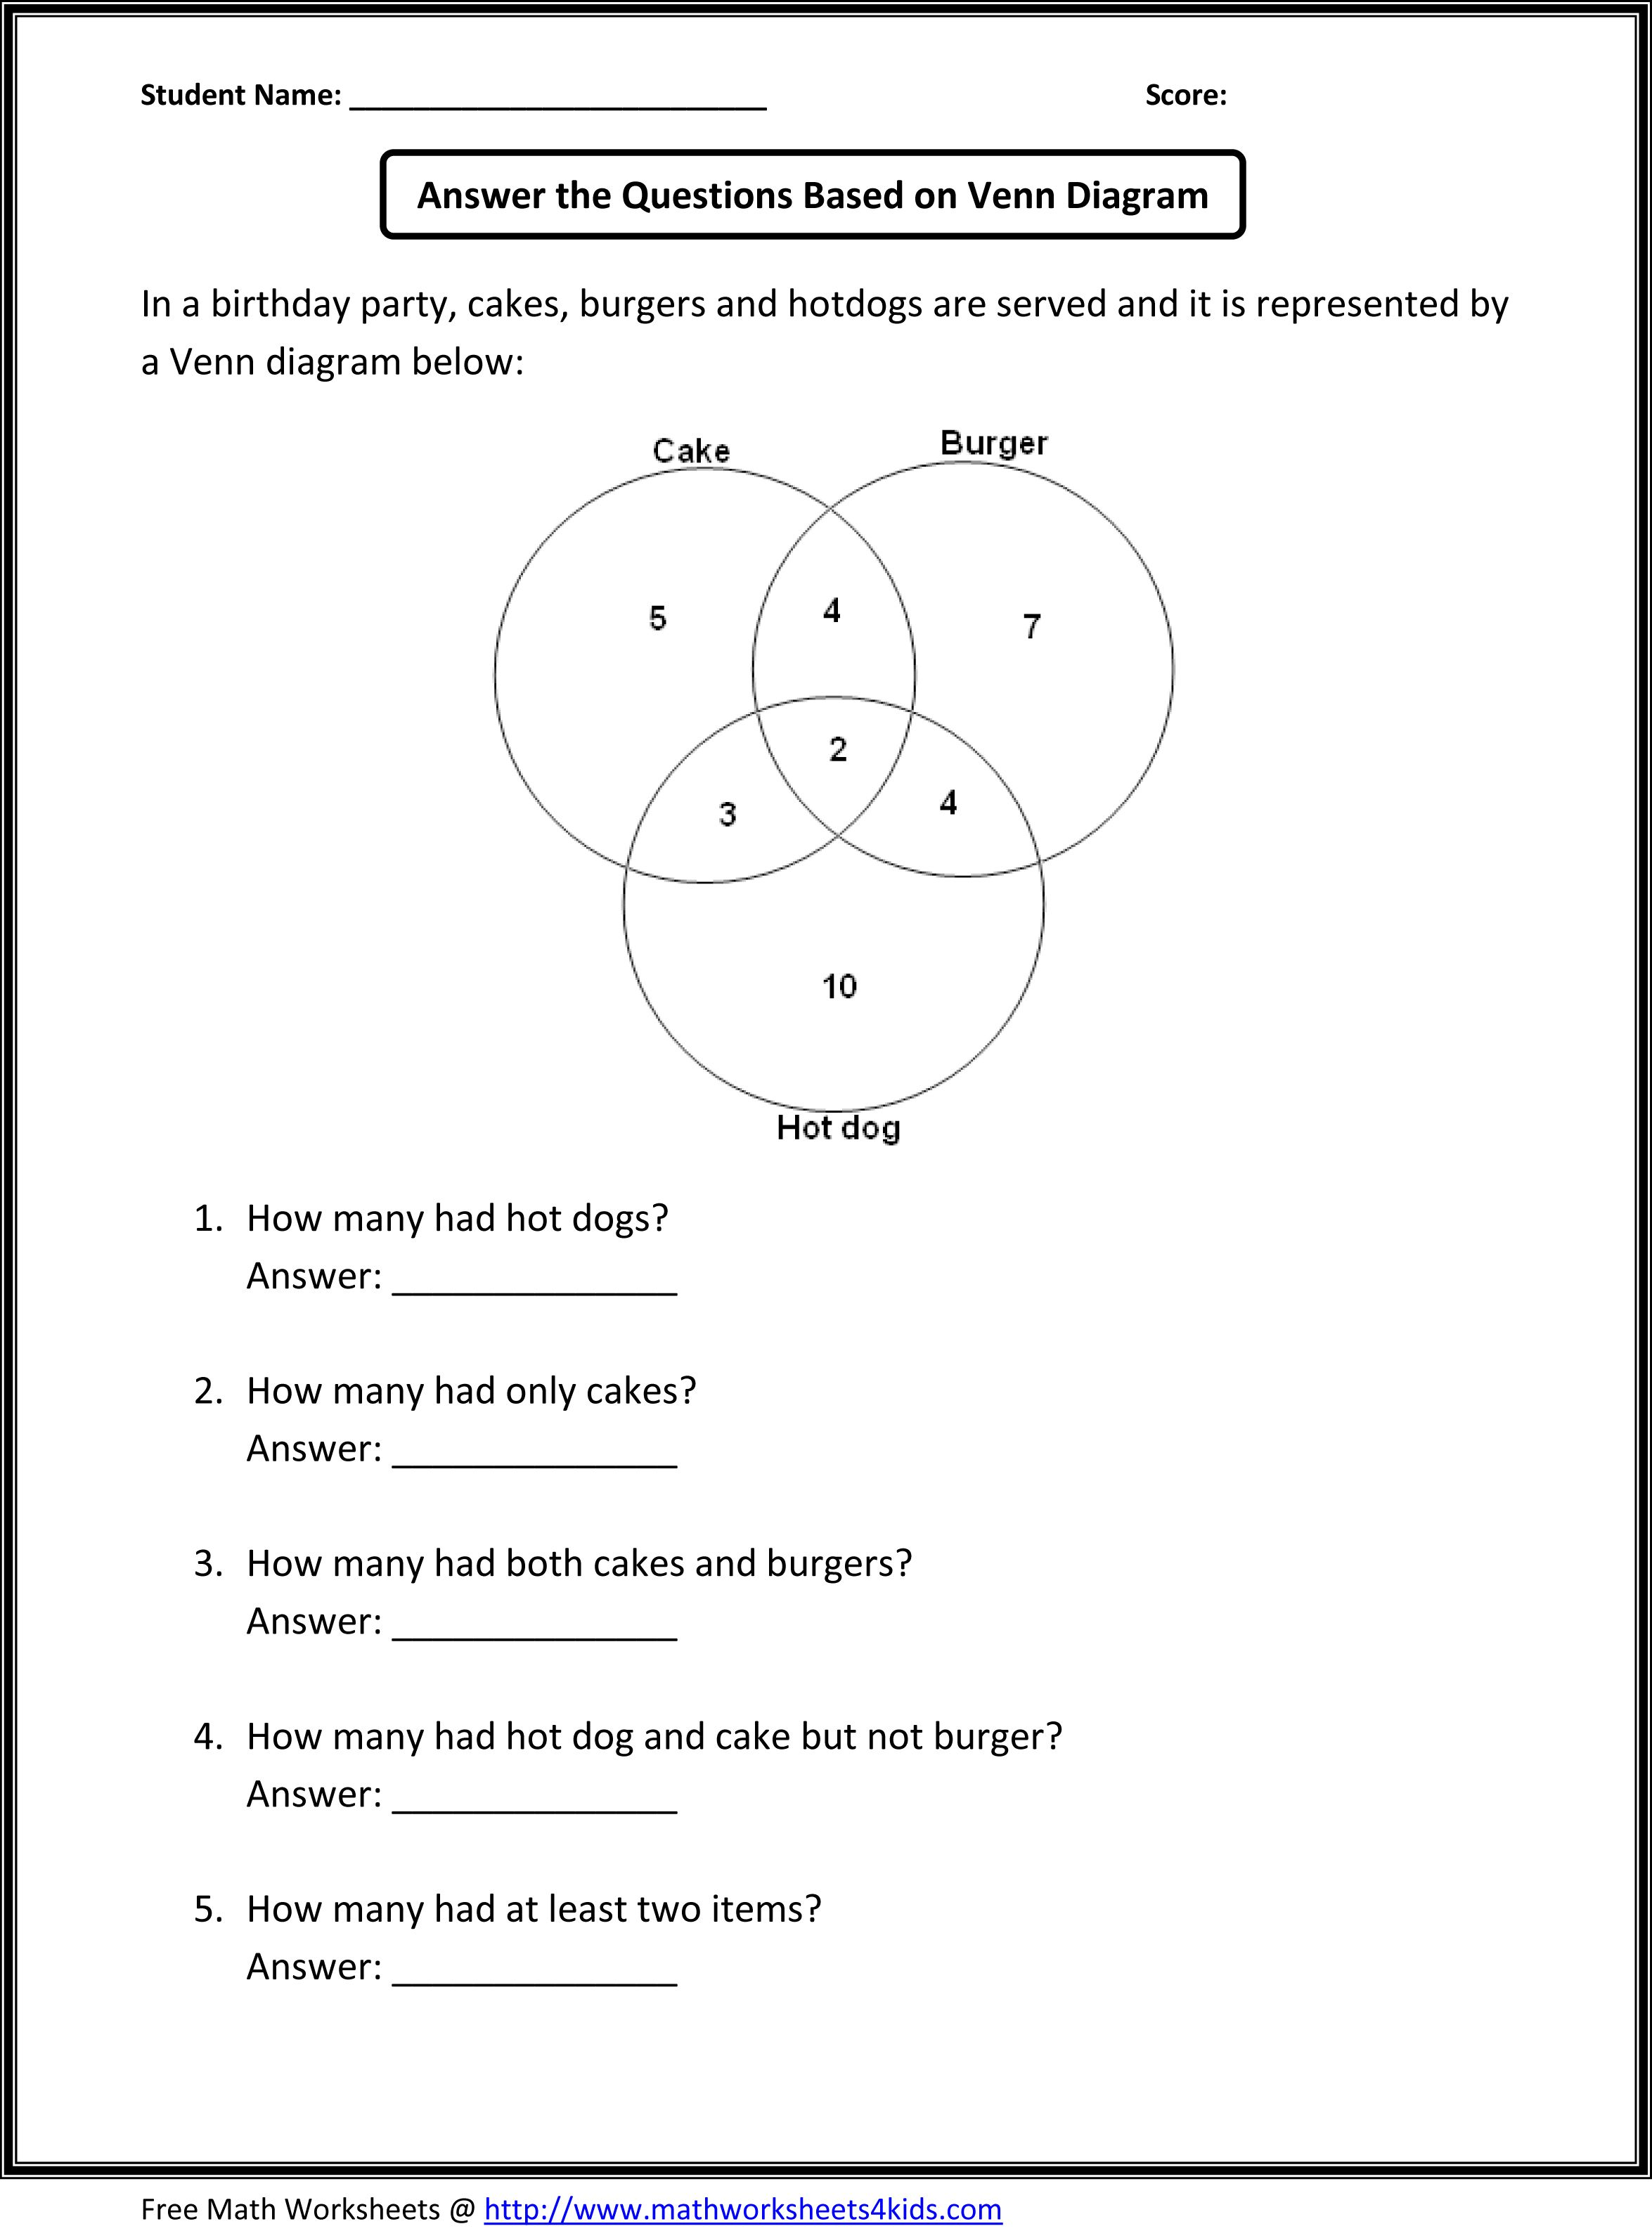 Fifth Grade Math Worksheets Venn Diagram Worksheet Math Worksheets Venn Diagram